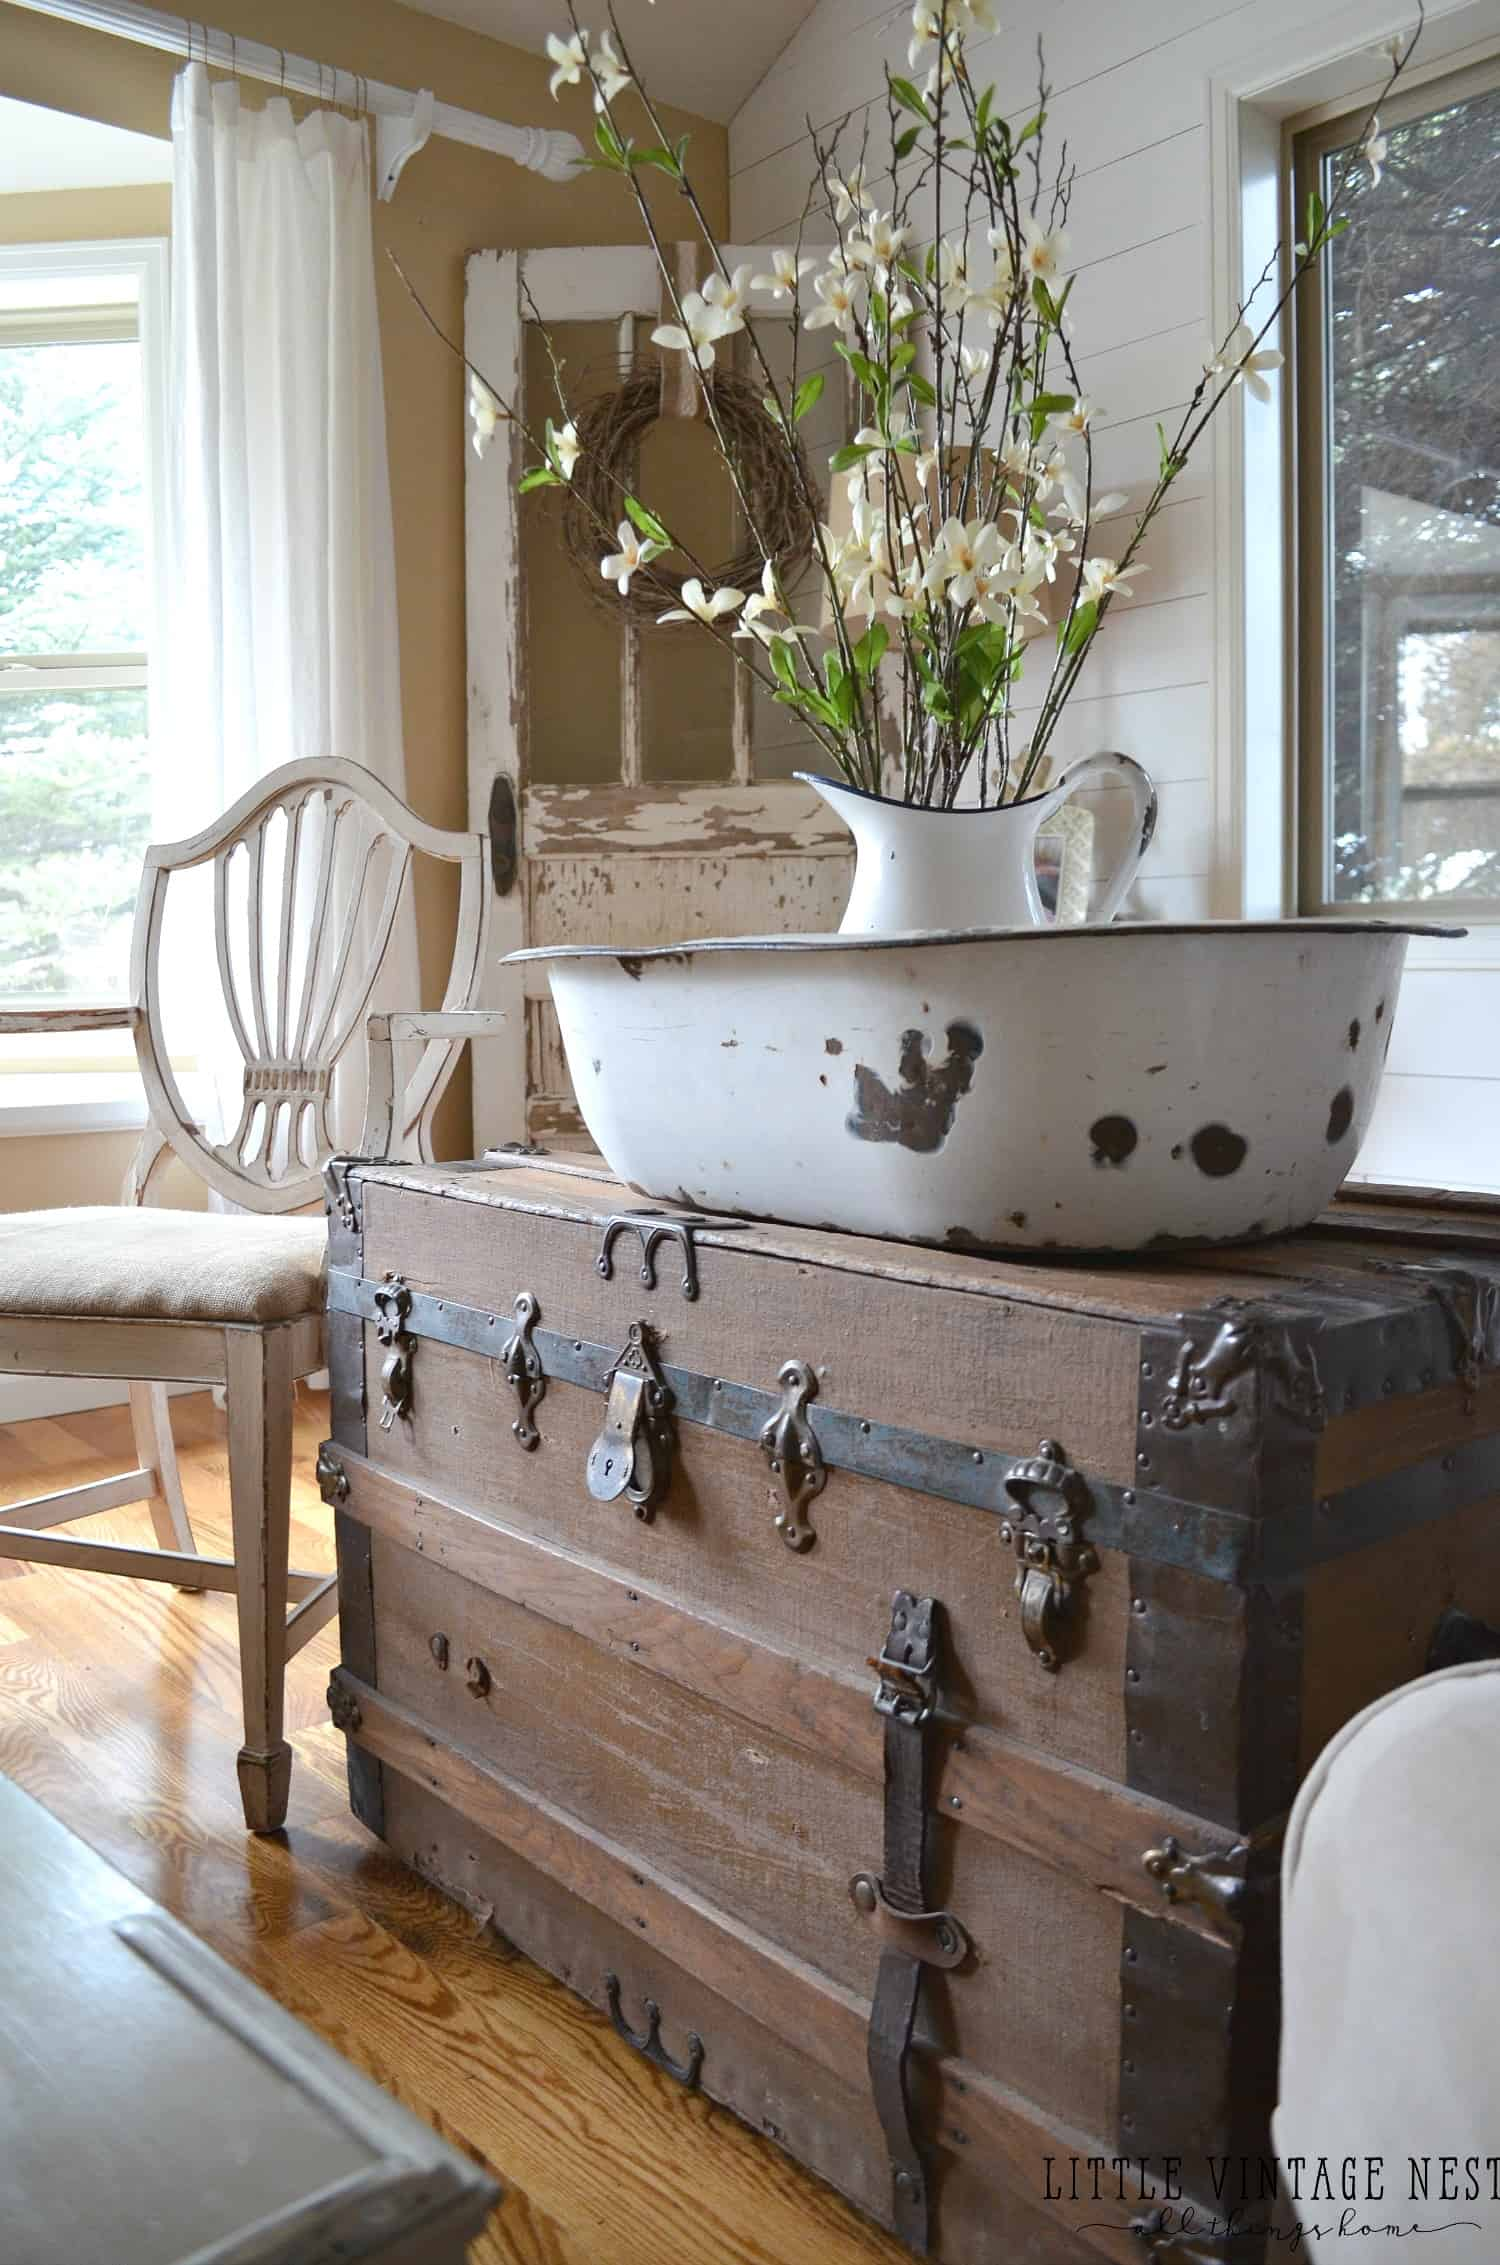 & 15 Vintage Decor Ideas That Are Sure To Inspire